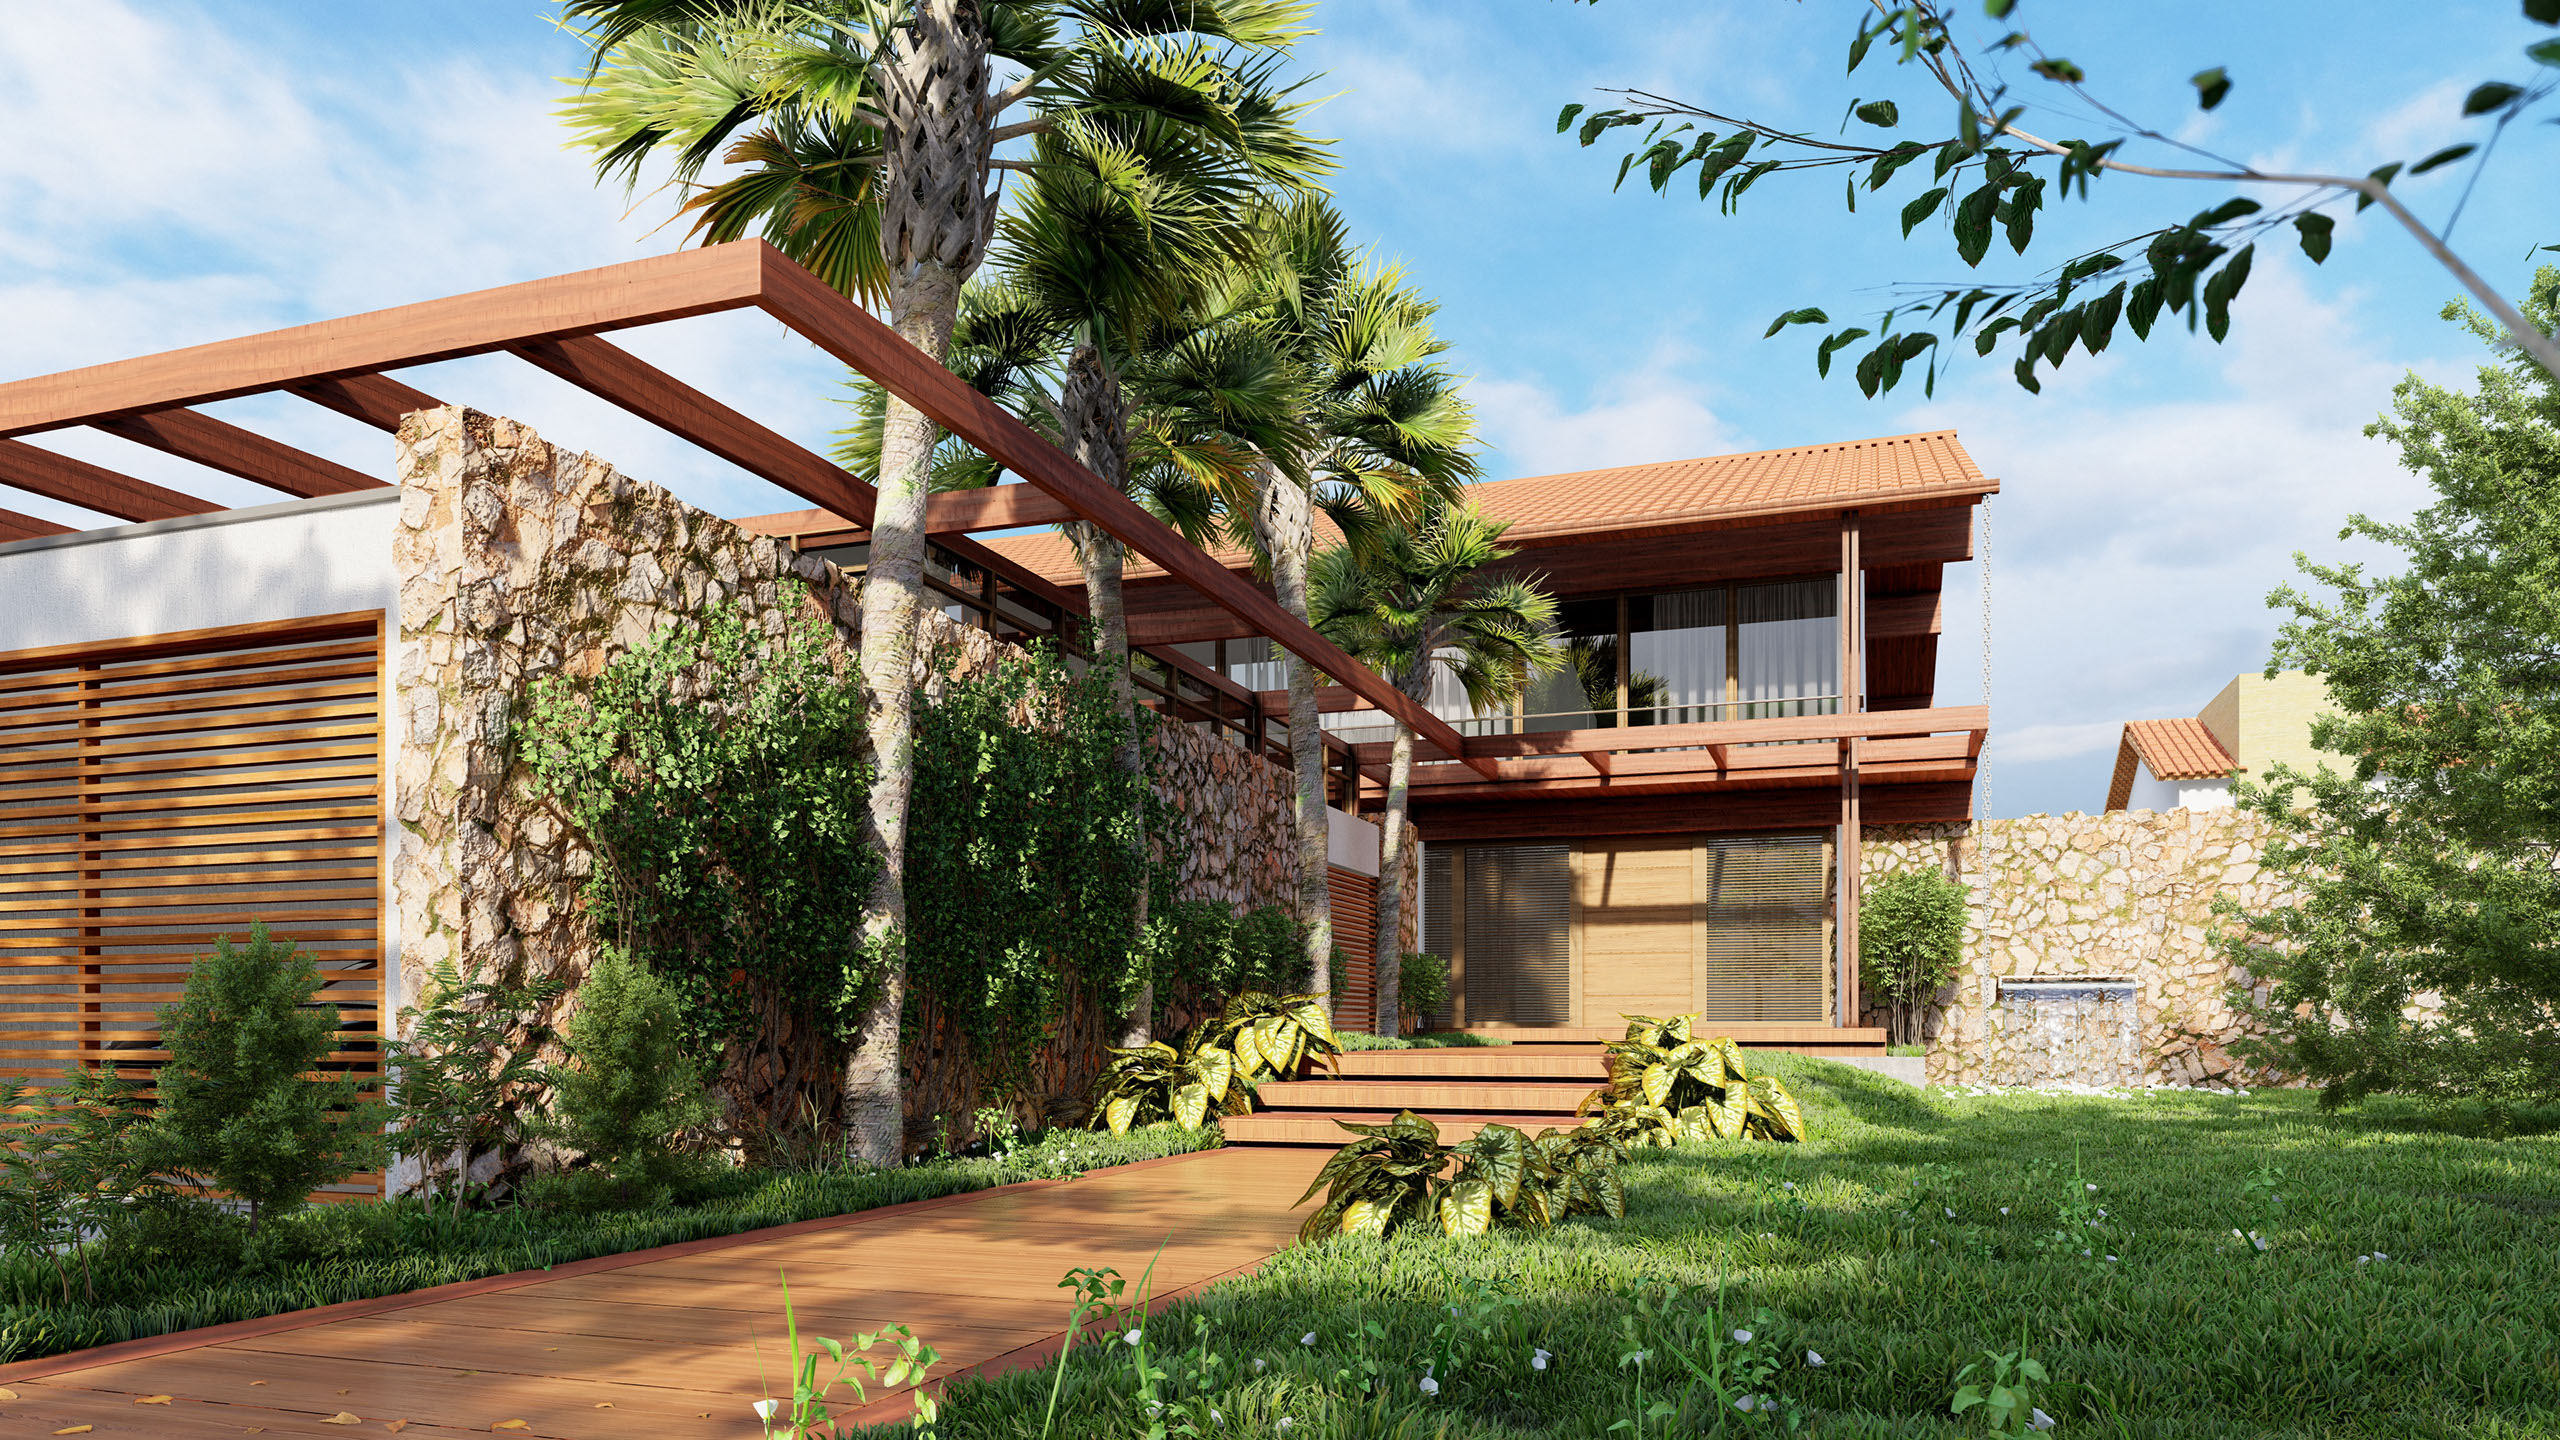 Beautiful Renders Within Reach | Lumion 3D Rendering Software